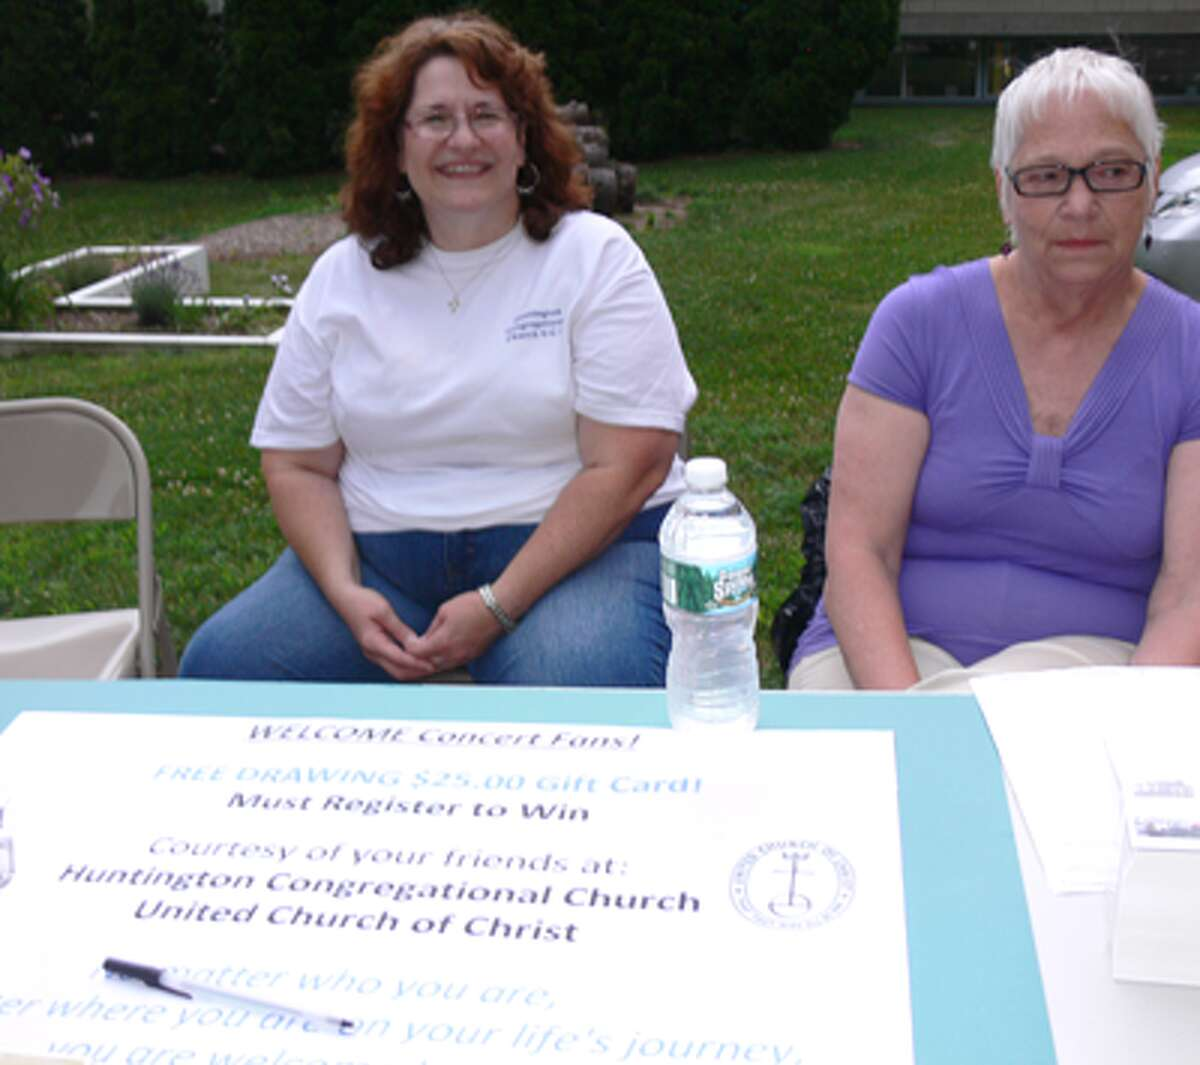 The Rev. Lucille Fritz of Huntington Congregational Church, left, and church member Gail Schoennagel staff the raffle and bottled water table in the church's parking lot during a concert.